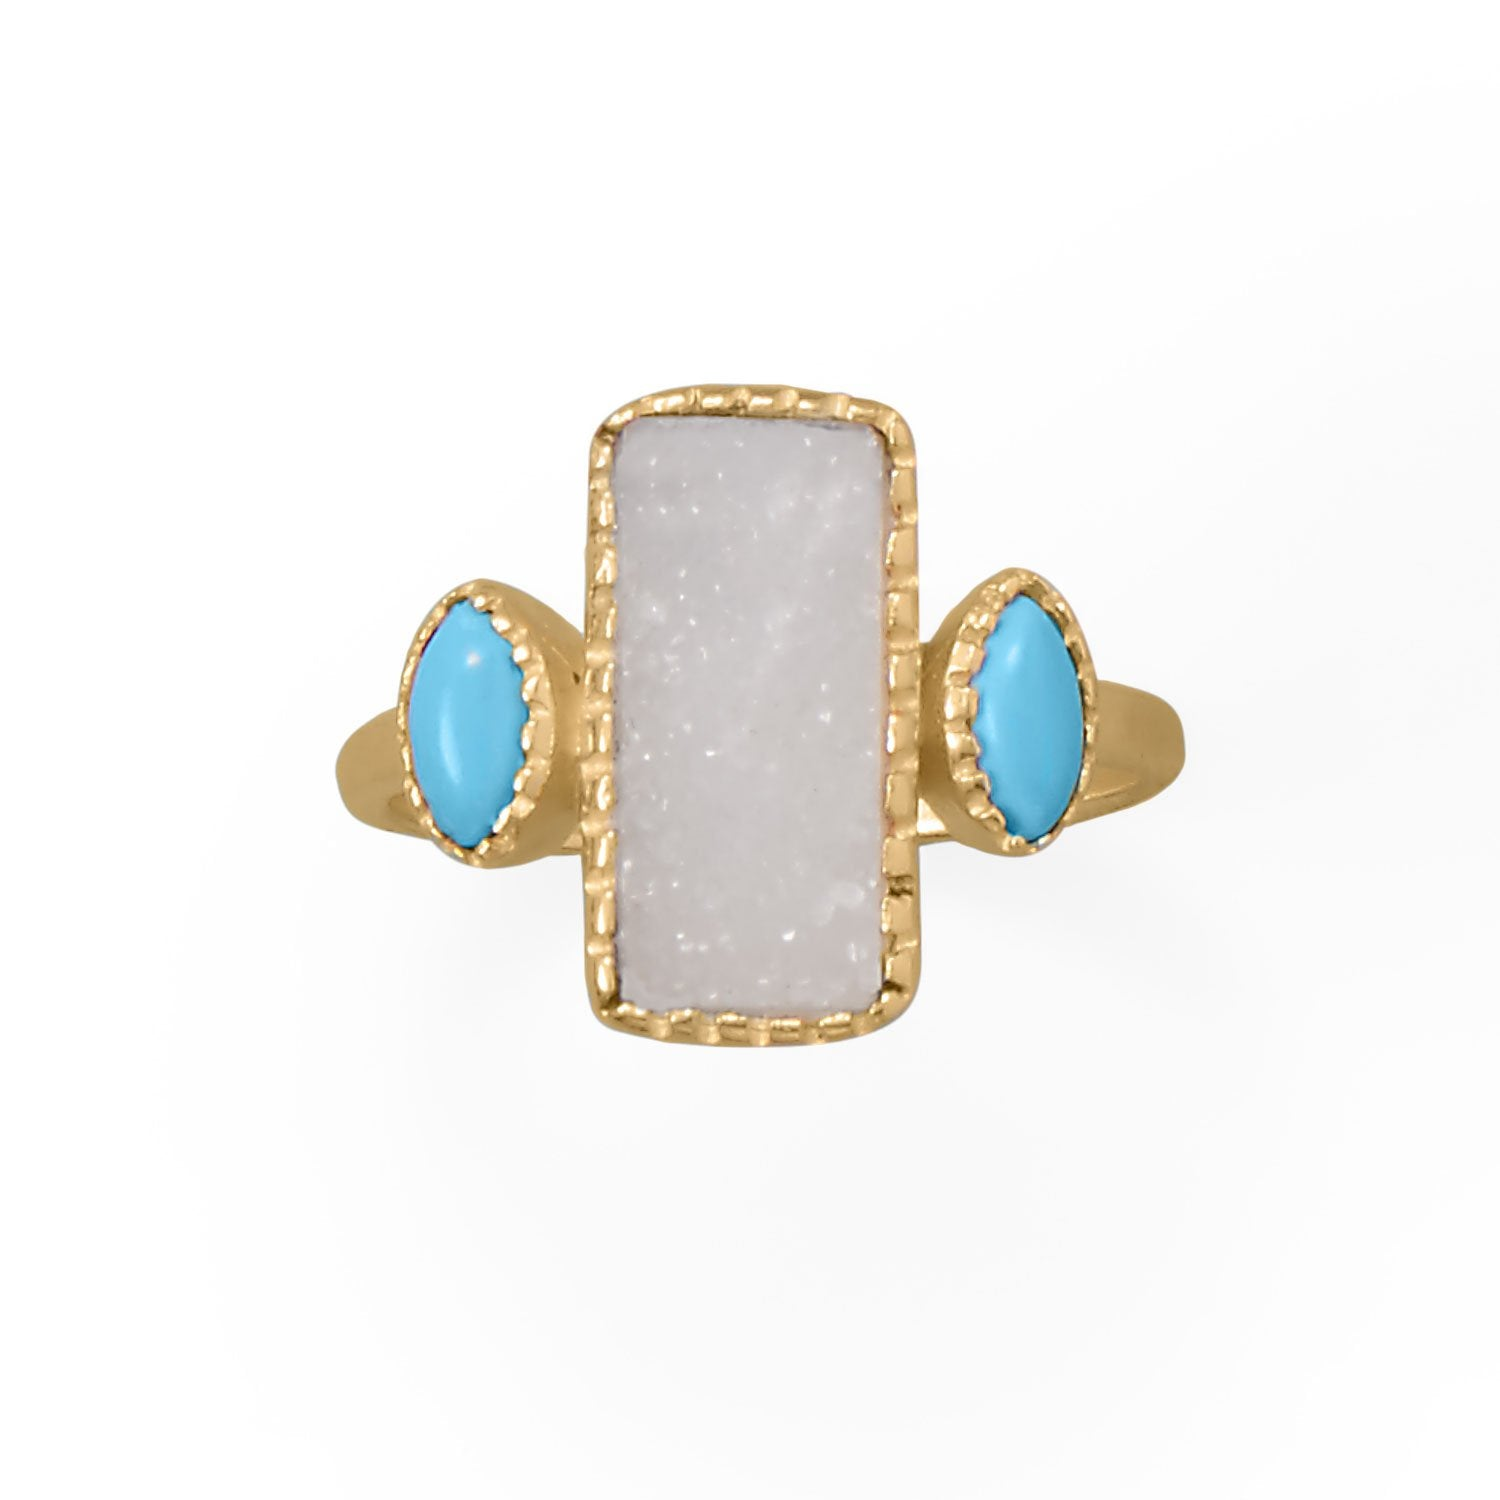 Darling and Dreamy! 14 Karat Gold Plated Druzy and Synthetic Turquoise Ring